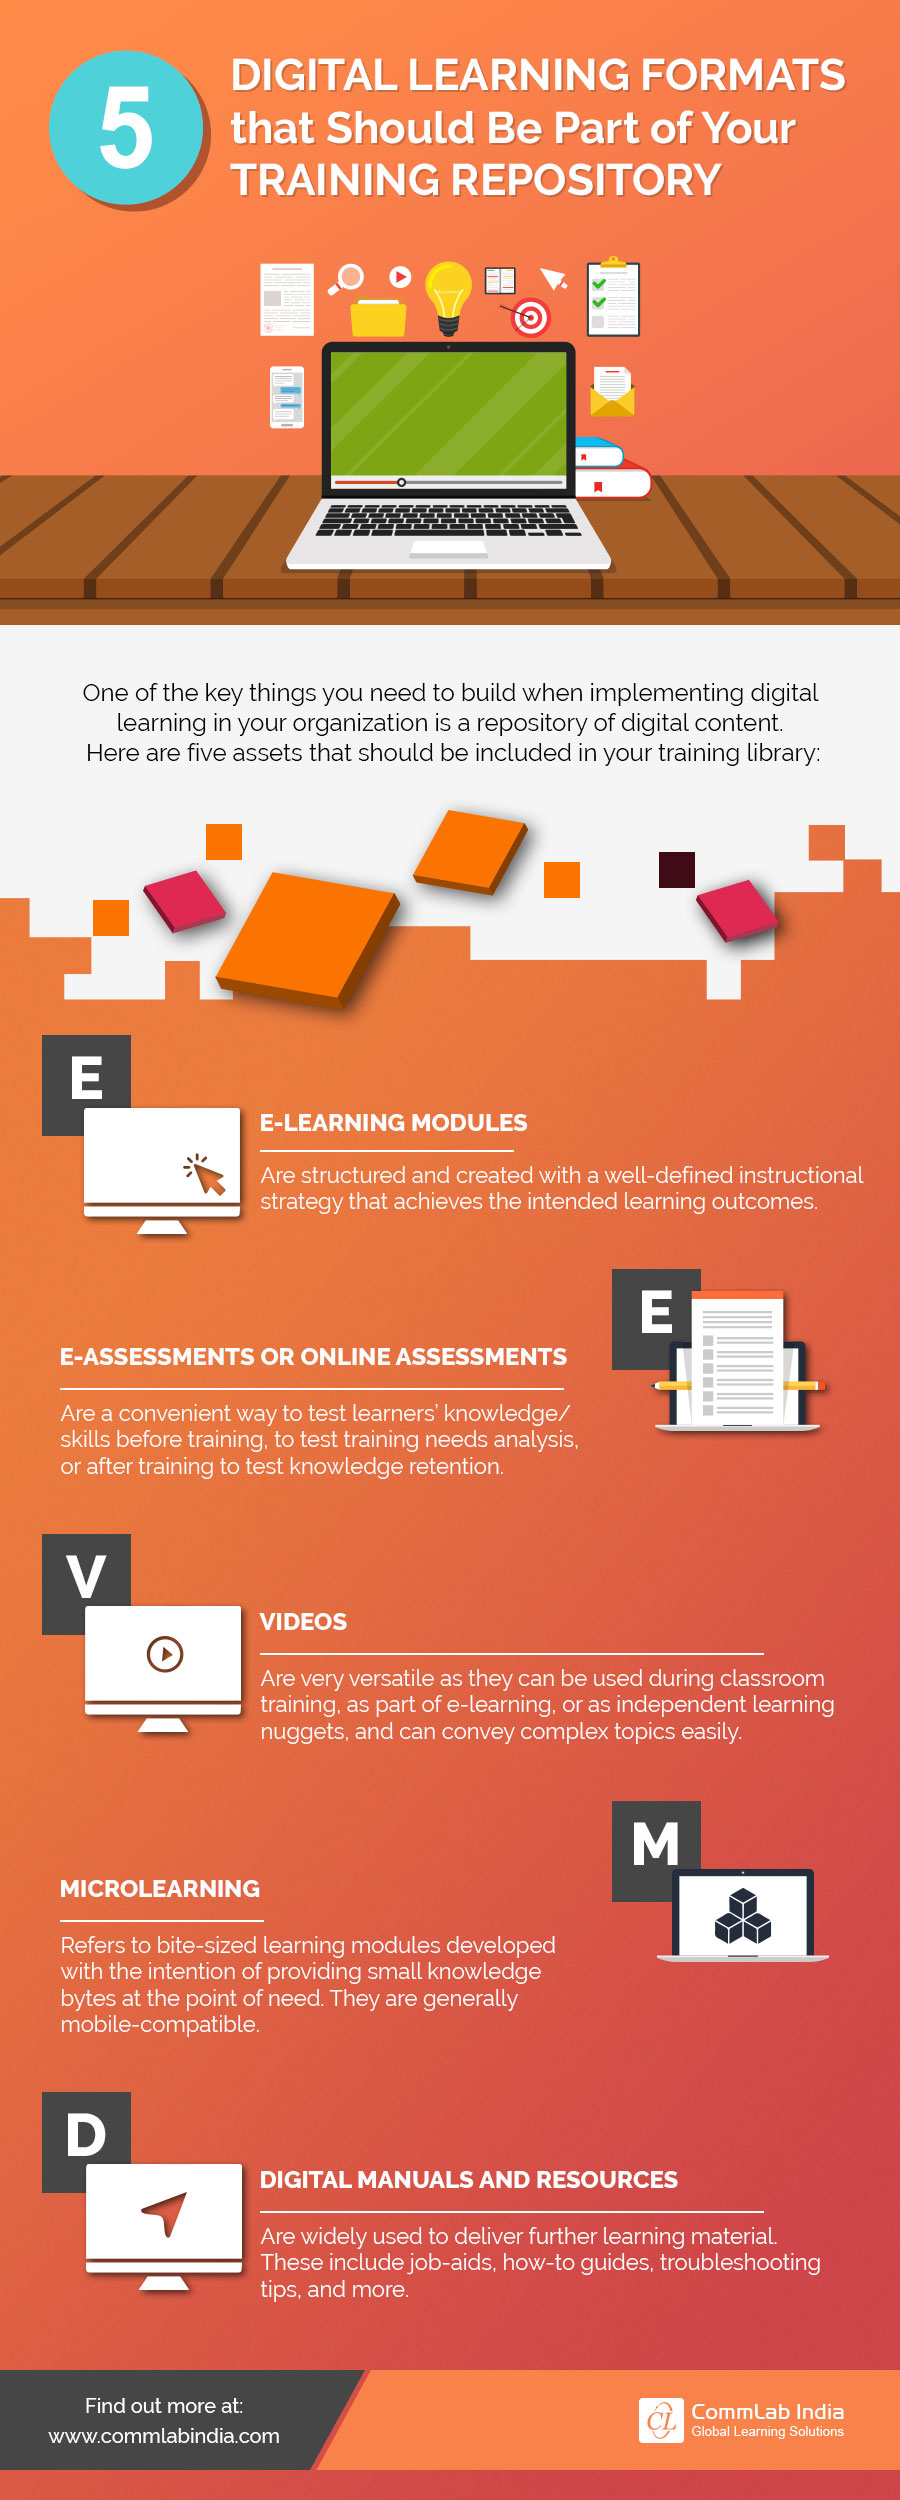 5 Digital Learning Formats that Should Be Part of Your Training Repository [Infographic]